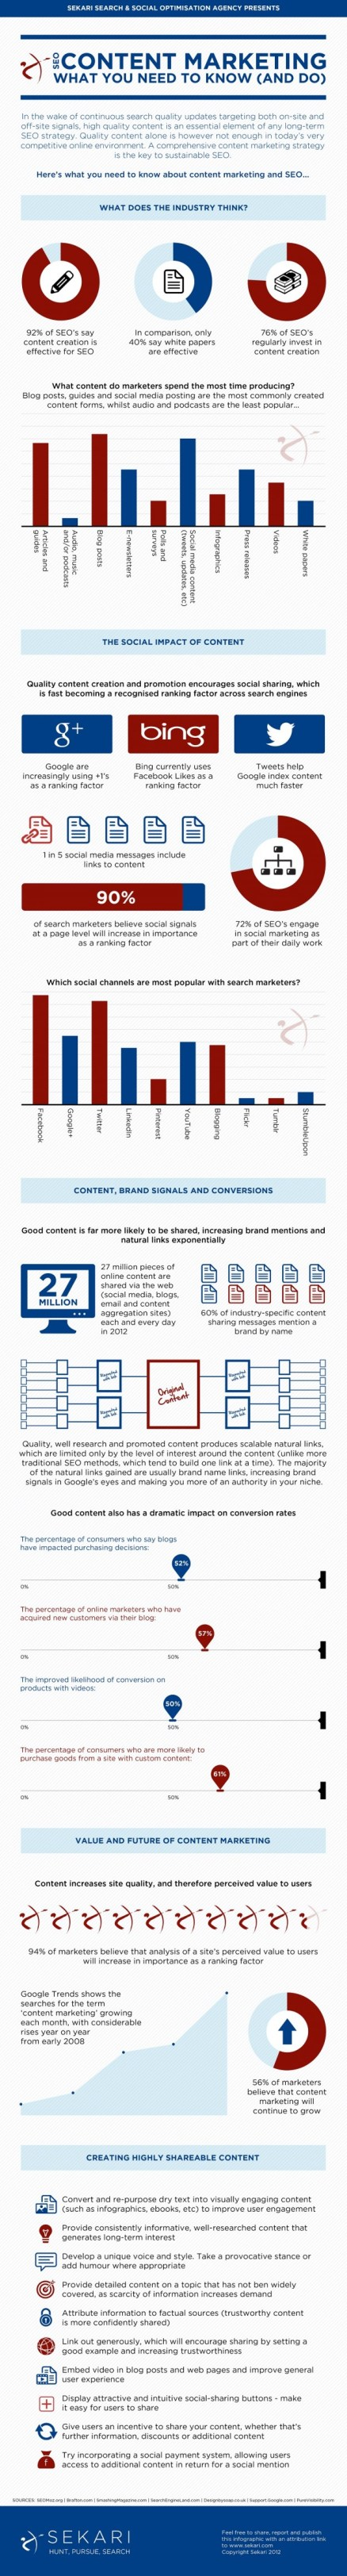 SEO Content Marketing What You Need to Know And Do Infographic